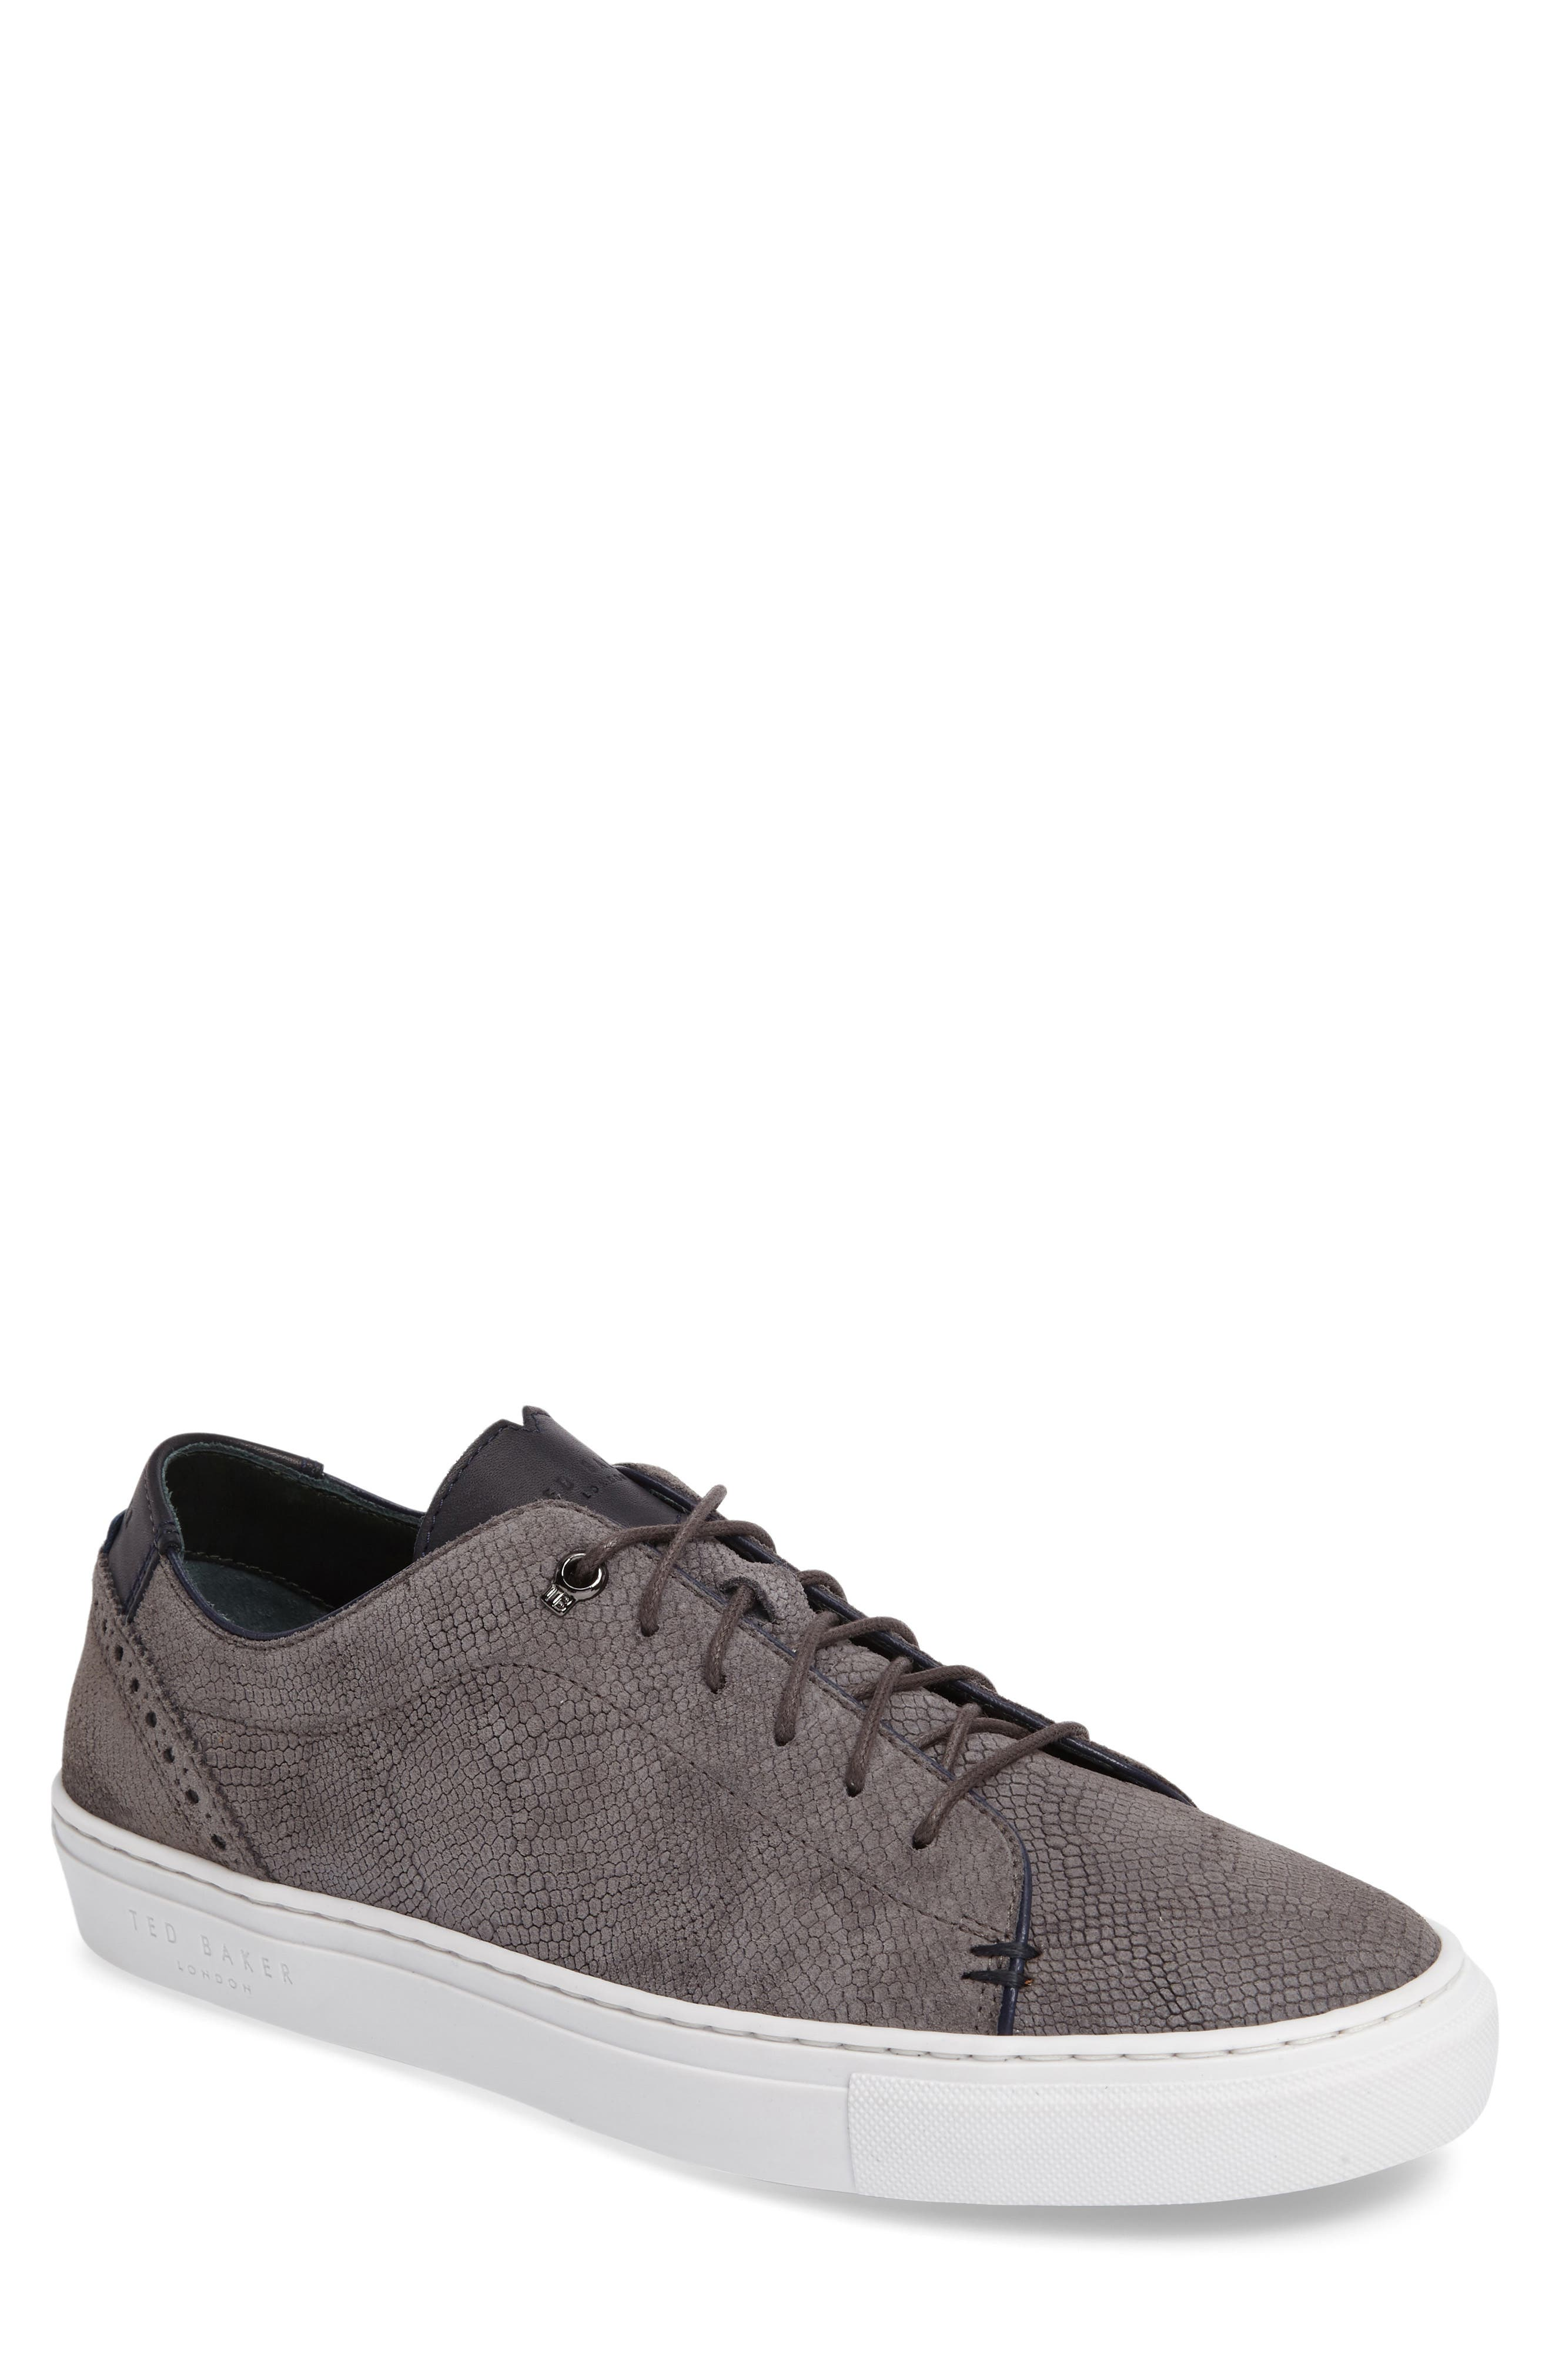 Duke Snake Embossed Sneaker,                             Main thumbnail 1, color,                             Dark Grey Suede